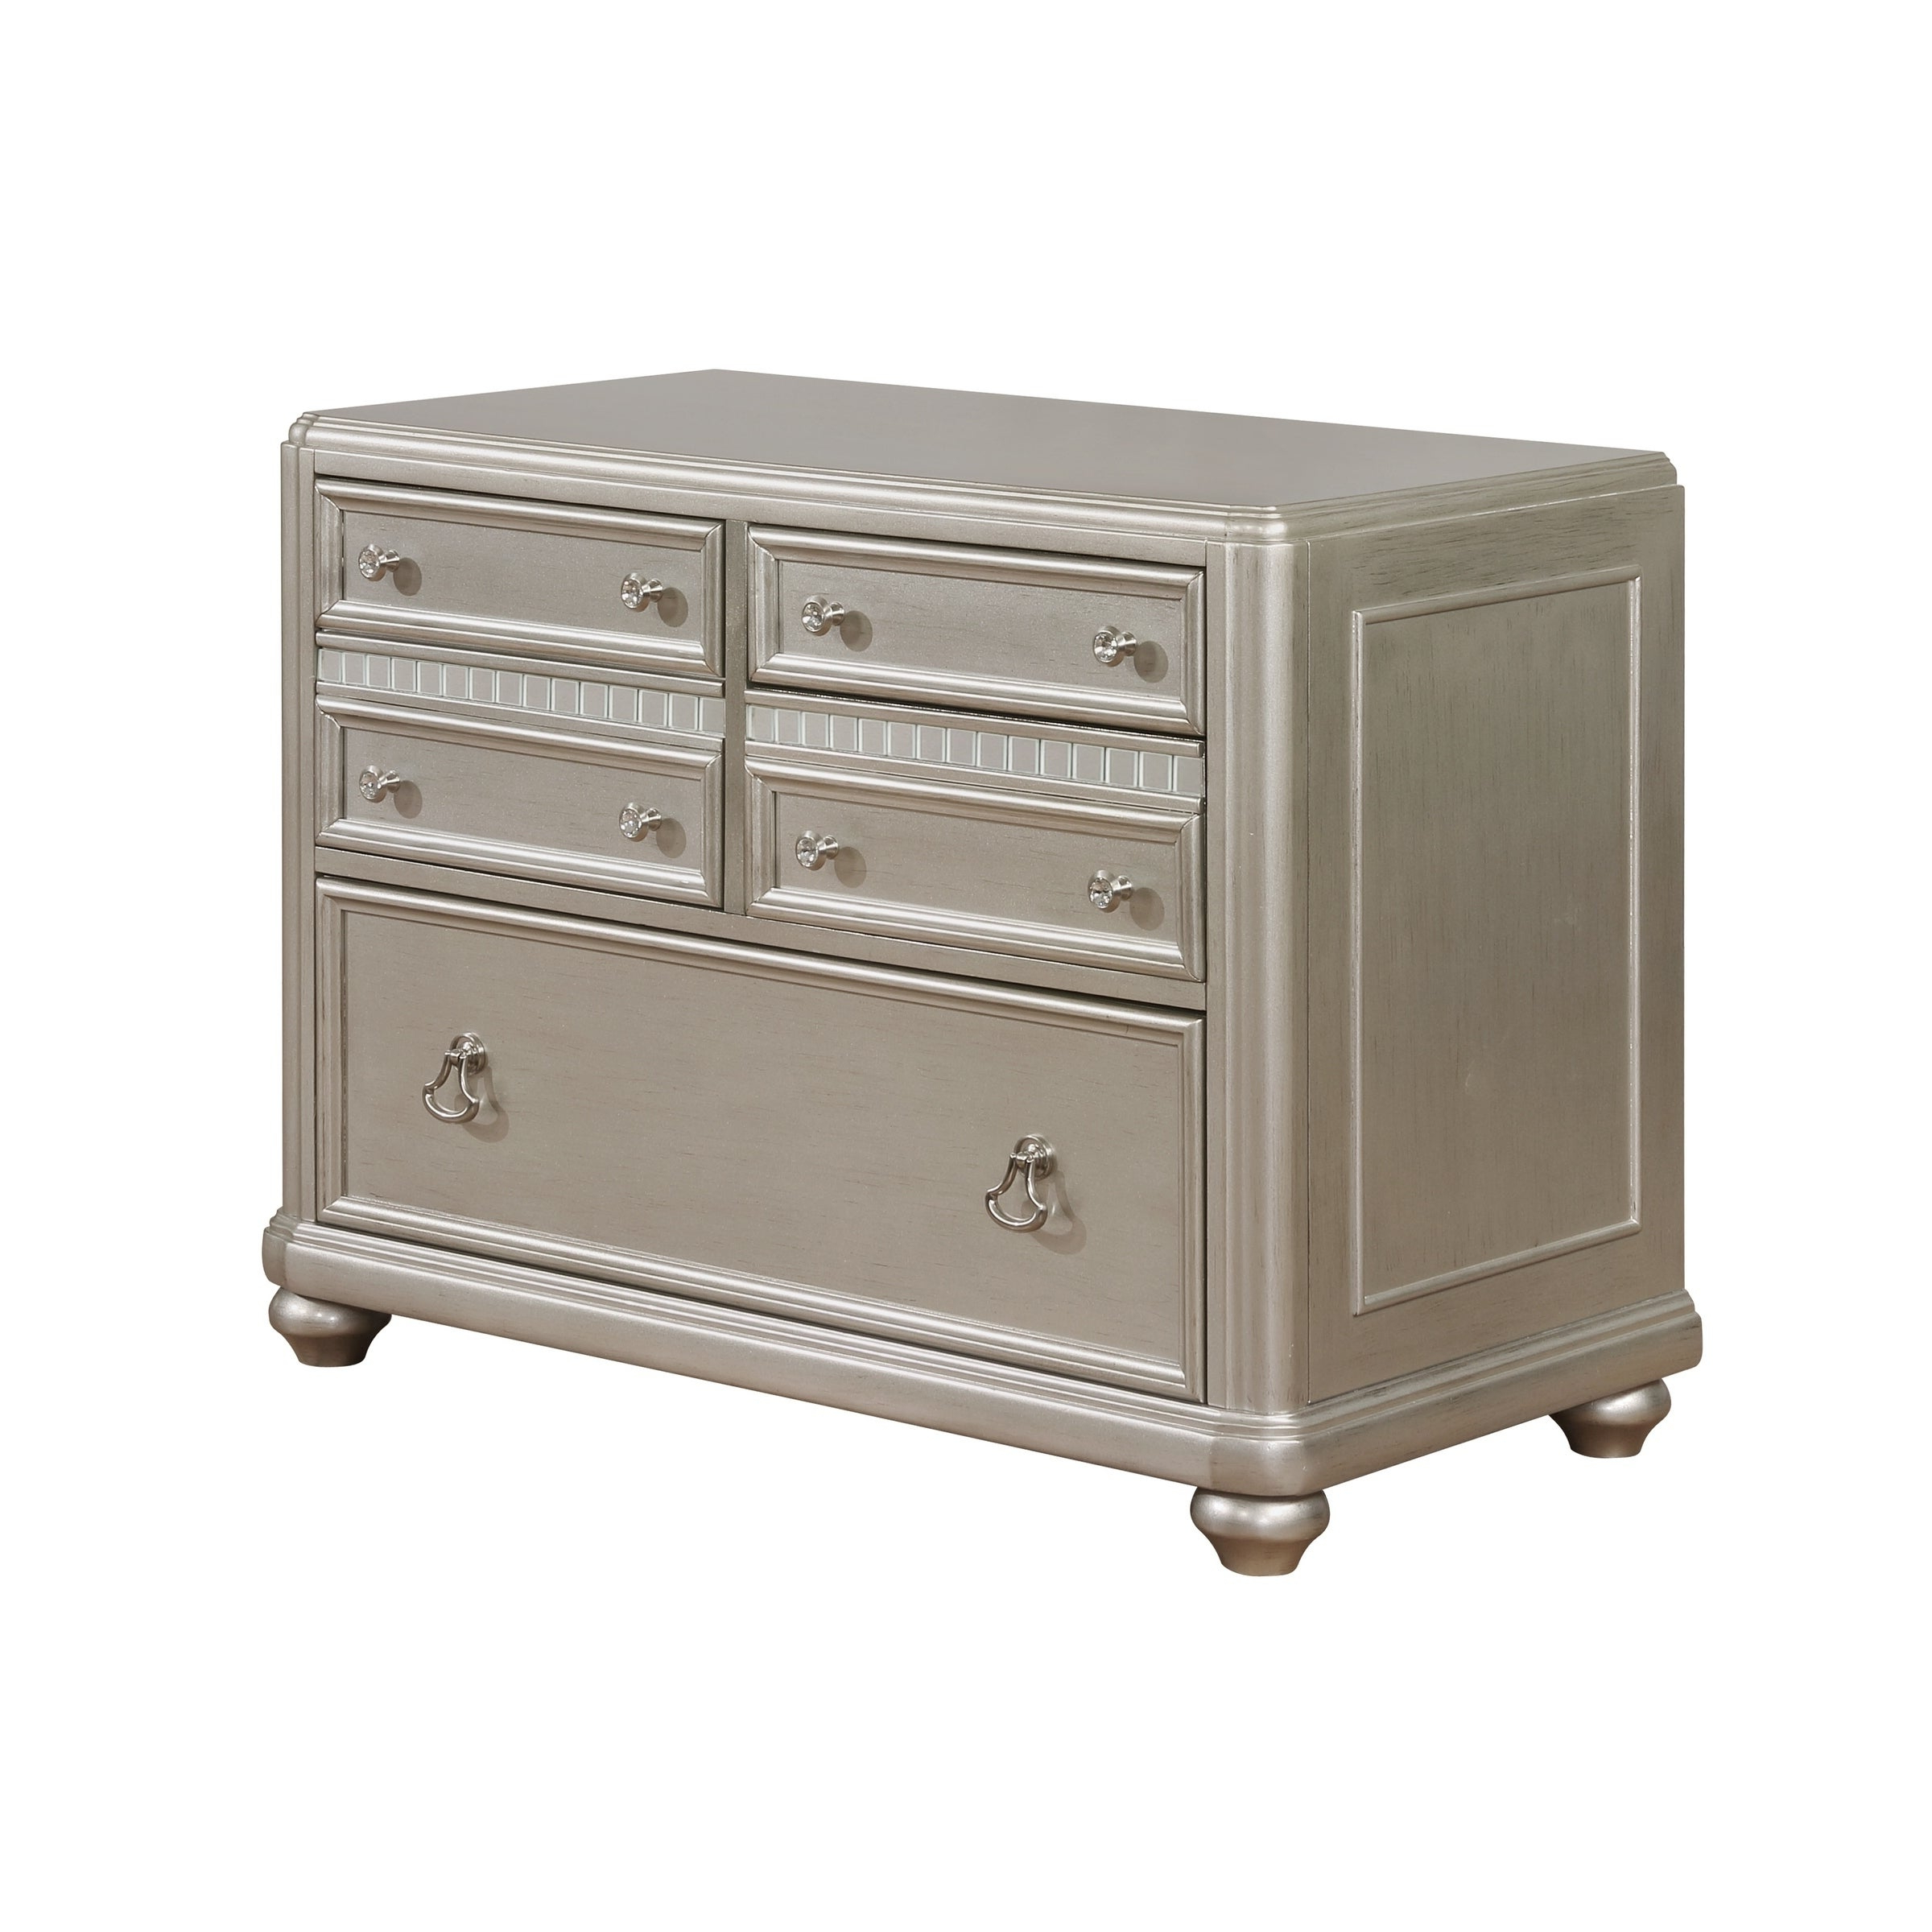 Payton Serving Sideboards Inside Most Up To Date Coaster Ritzville Metallic Champagne Wood Finish 4 Drawer File Cabinet (View 10 of 20)